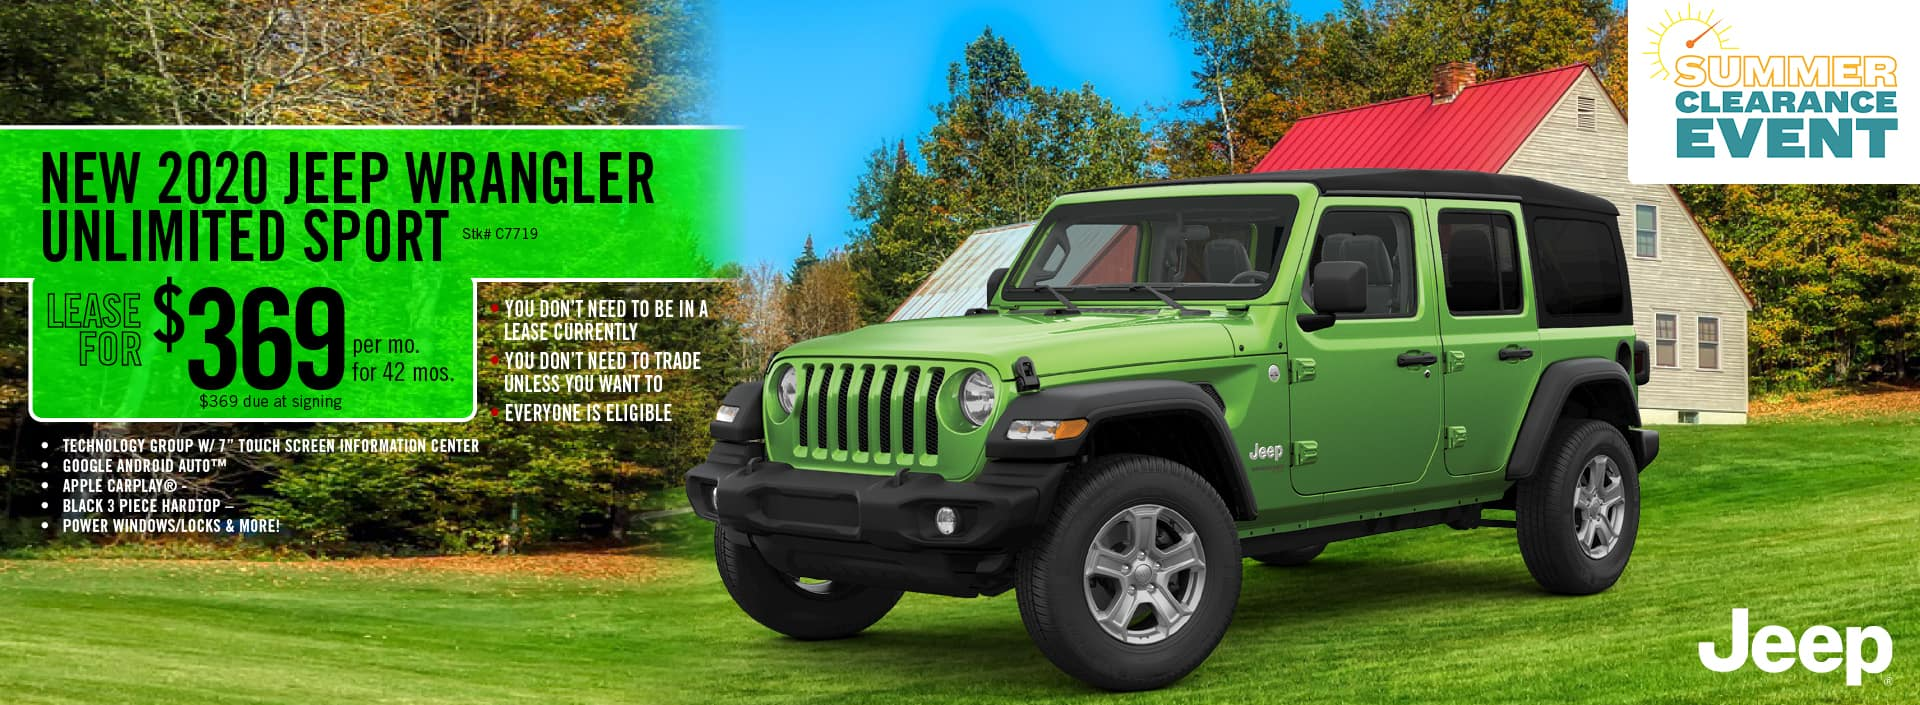 2020 Jeep Wrangler Unlimited Sport lease deal $369 for 42 months | Barre, VT